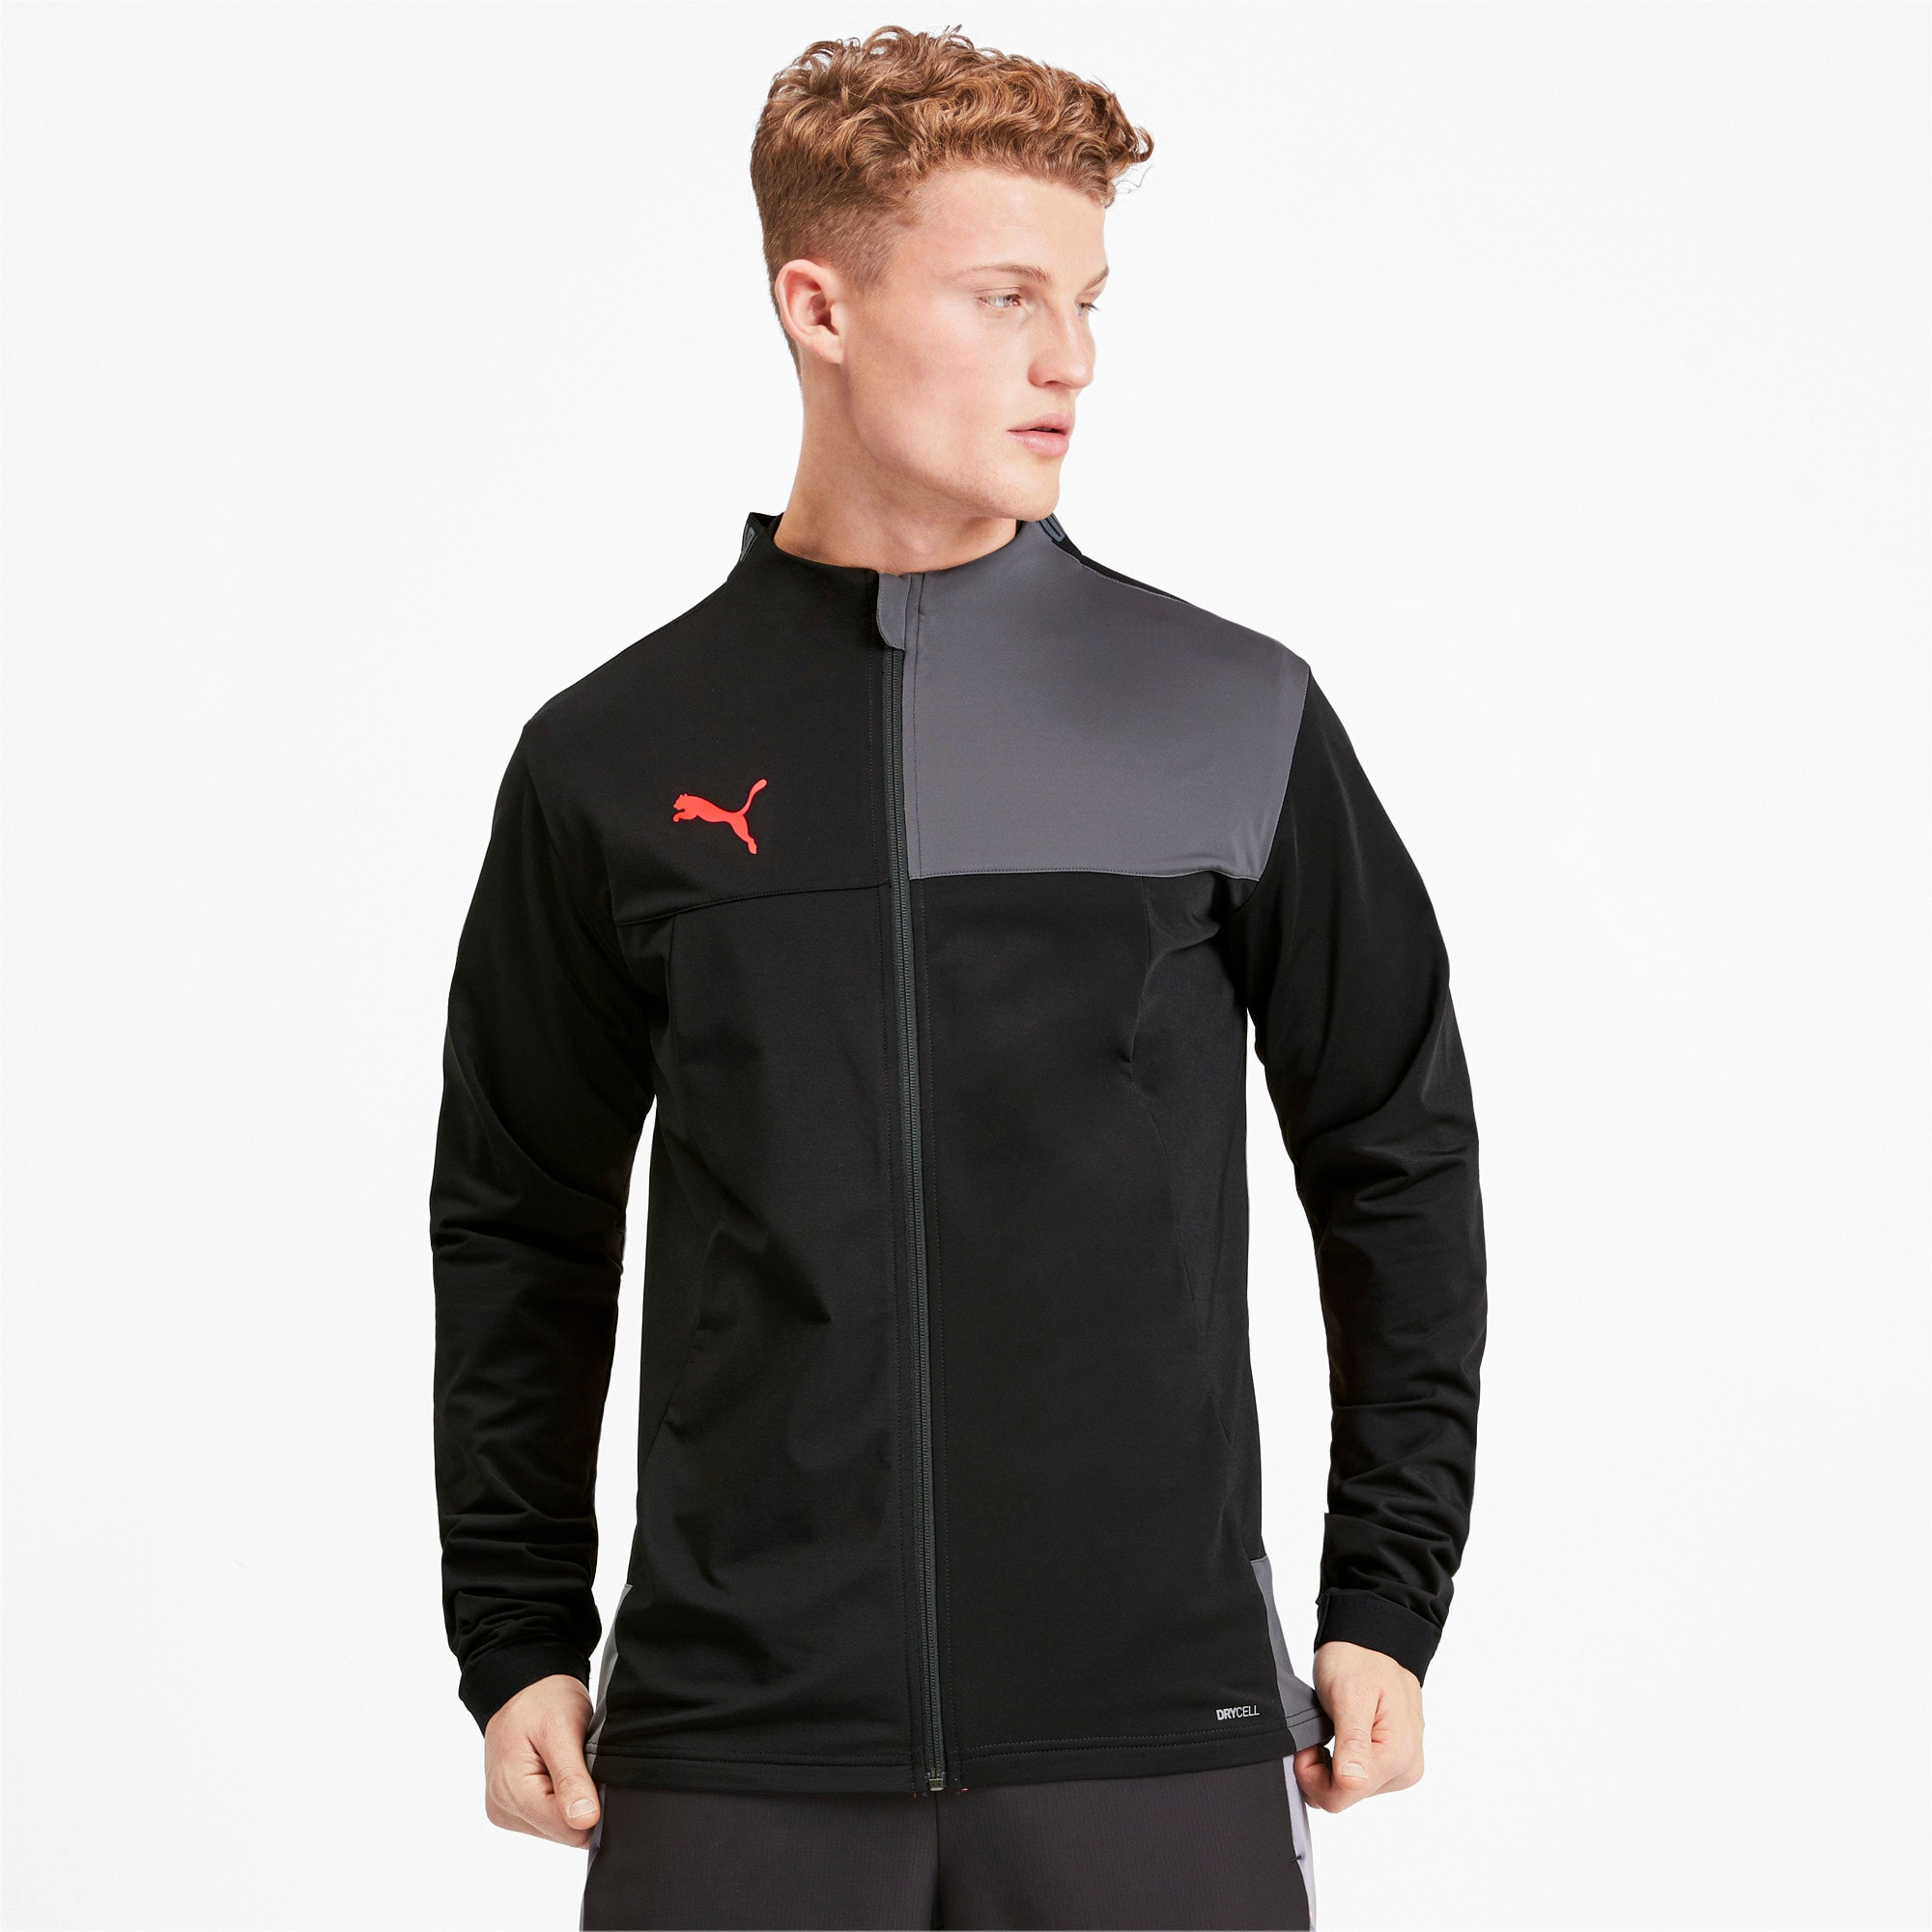 Thumbnail 1 of Trainingsjack voor heren, Puma Black-Nrgy Red, medium